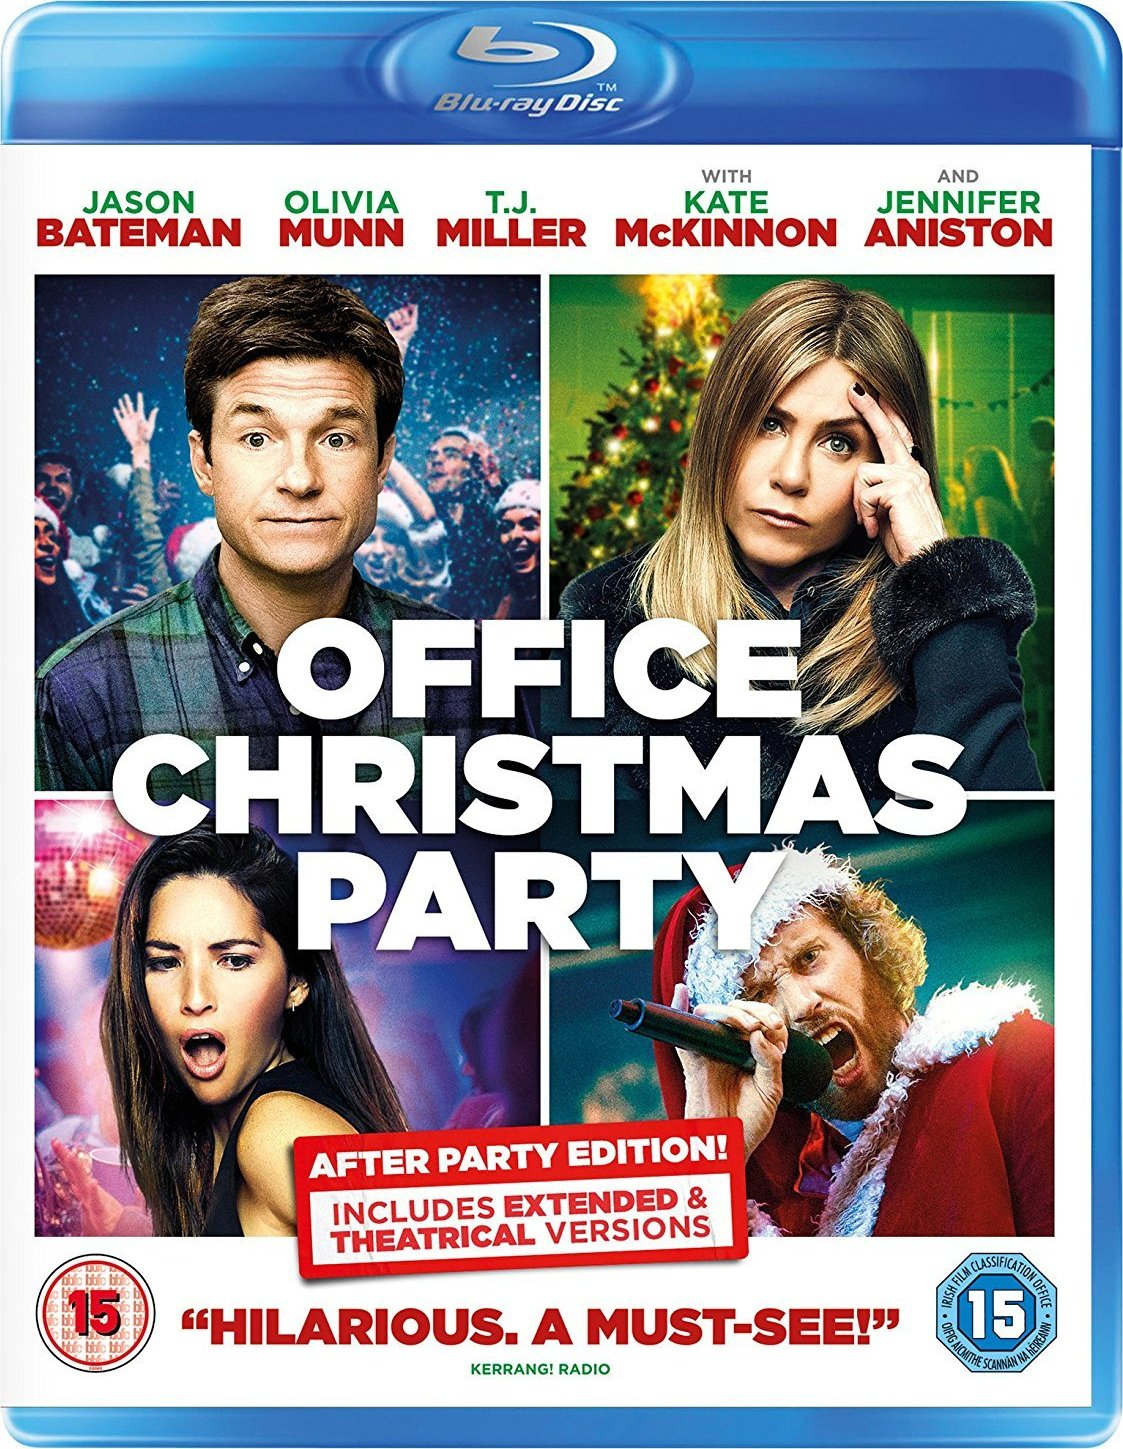 Office Christmas Party Blu-ray: After Party Edition! (United Kingdom)